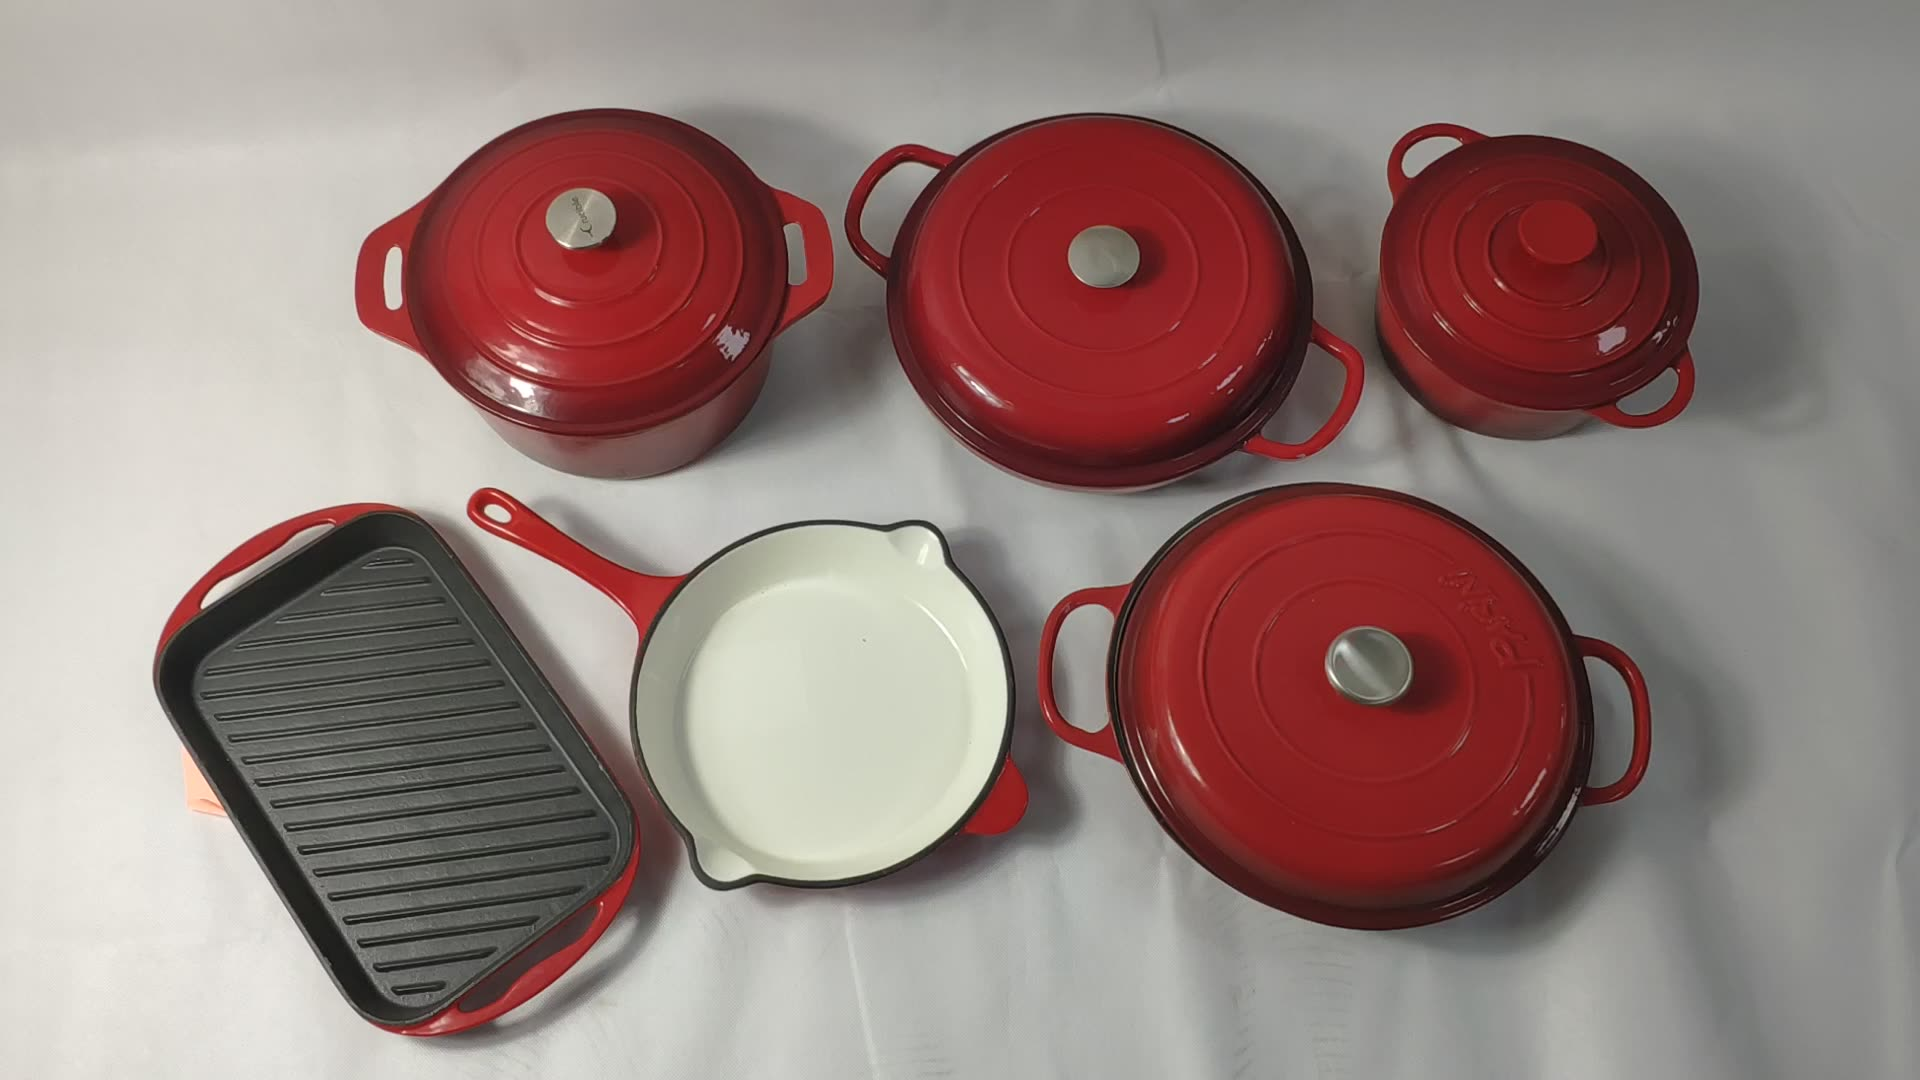 Fashion design classic red flat-bottomed cast iron enamel BBQ grill cookware skillet steak pan fry pan with handle for cooking